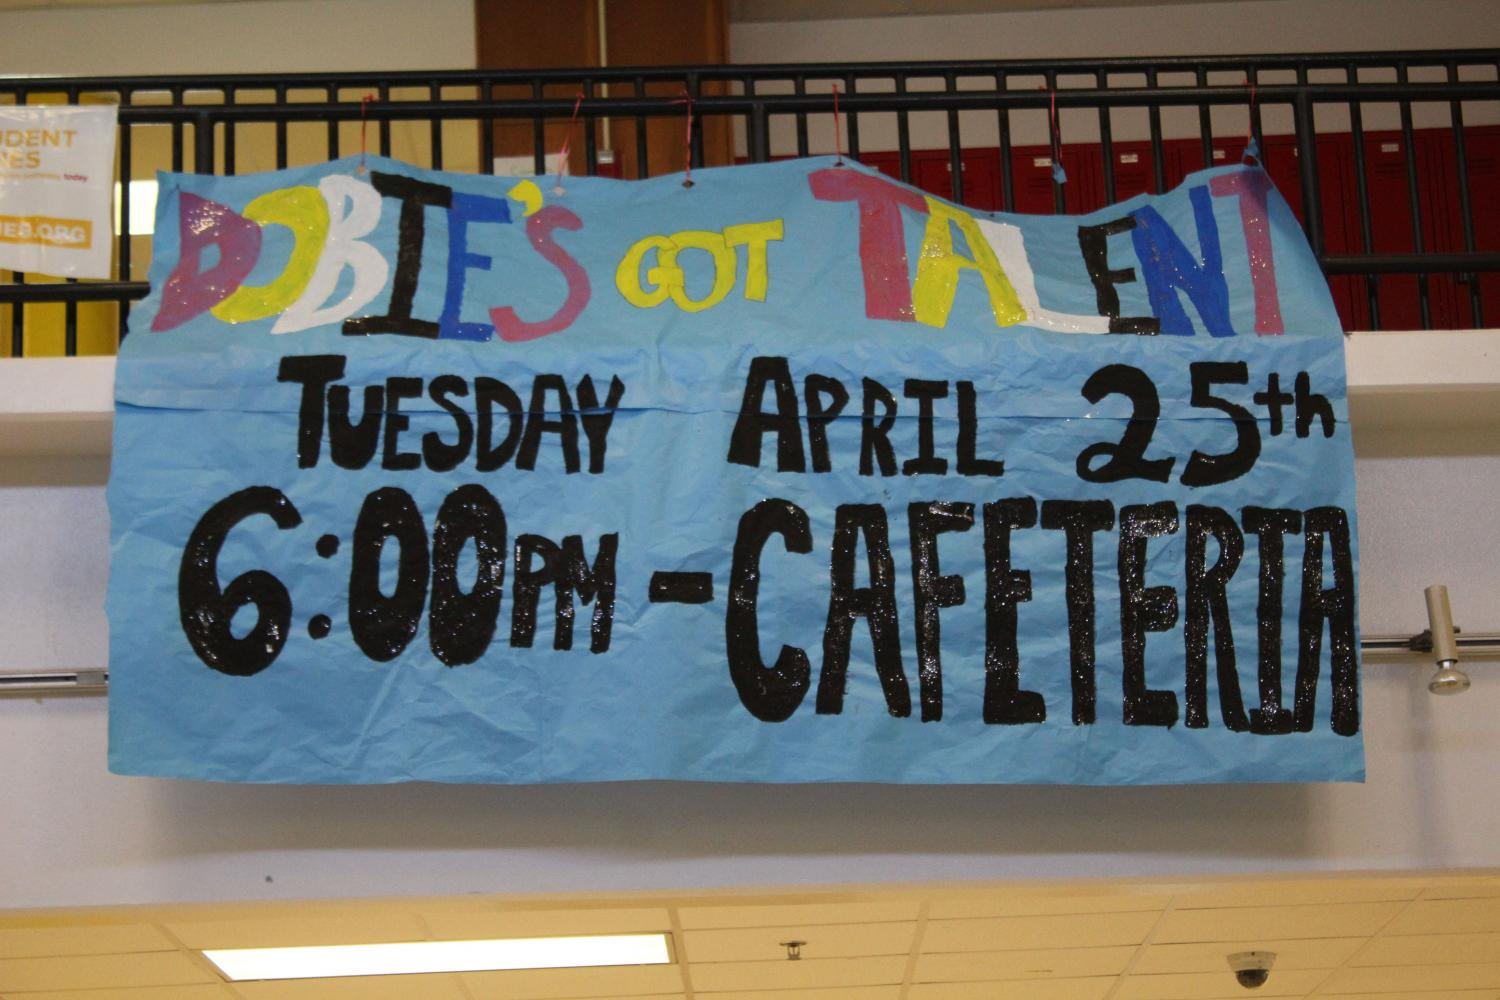 A sign about the talent show in the cafeteria.